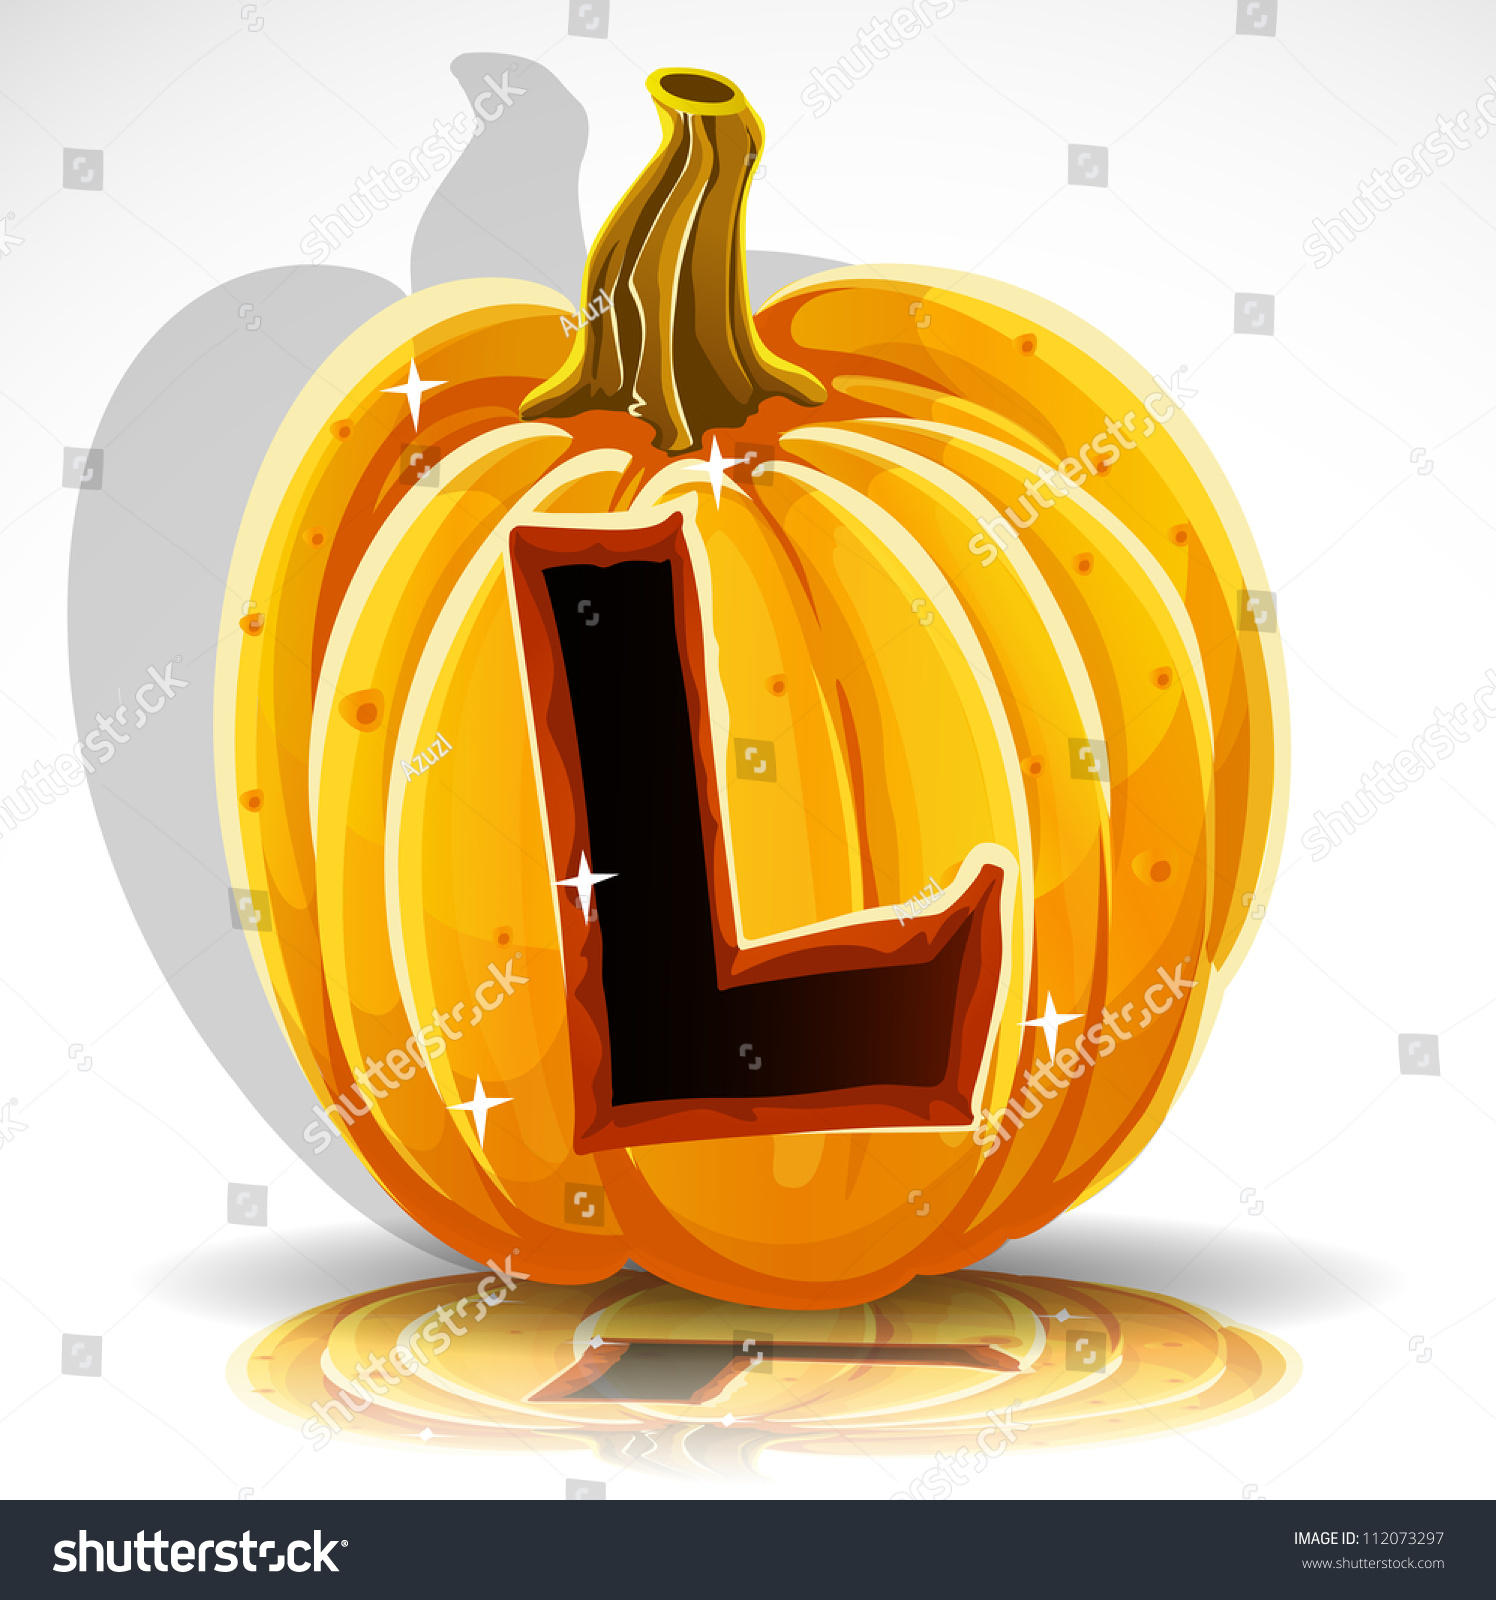 happy halloween font cut out pumpkin stock vector (royalty free